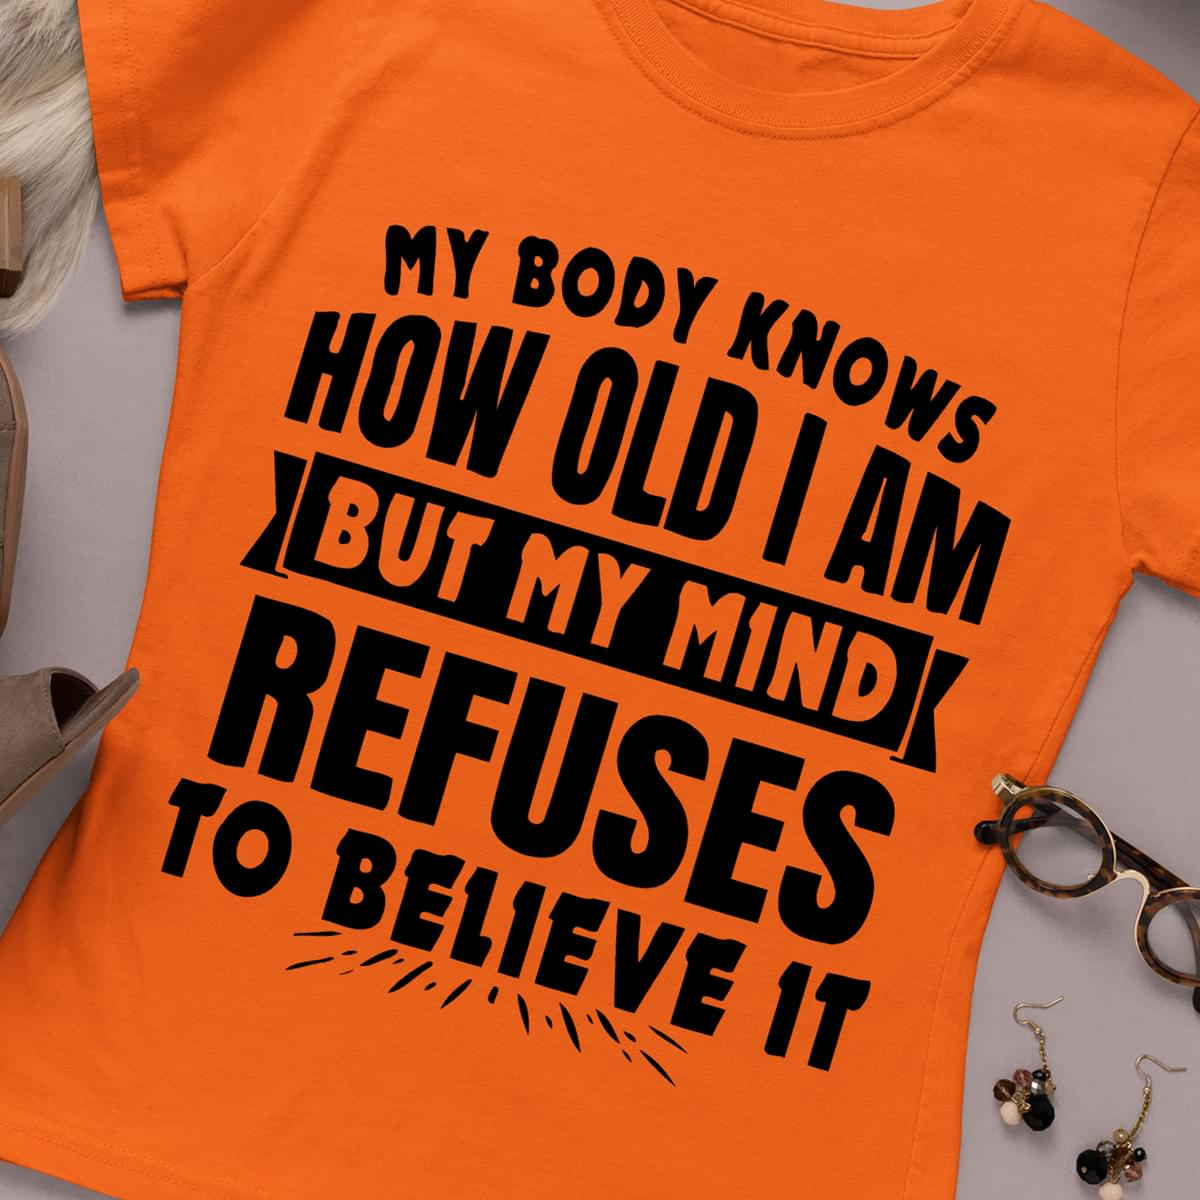 My Body Knows How Old I Am But My Mind Refuses To Believe It cotton t-shirt Hoodie Mug